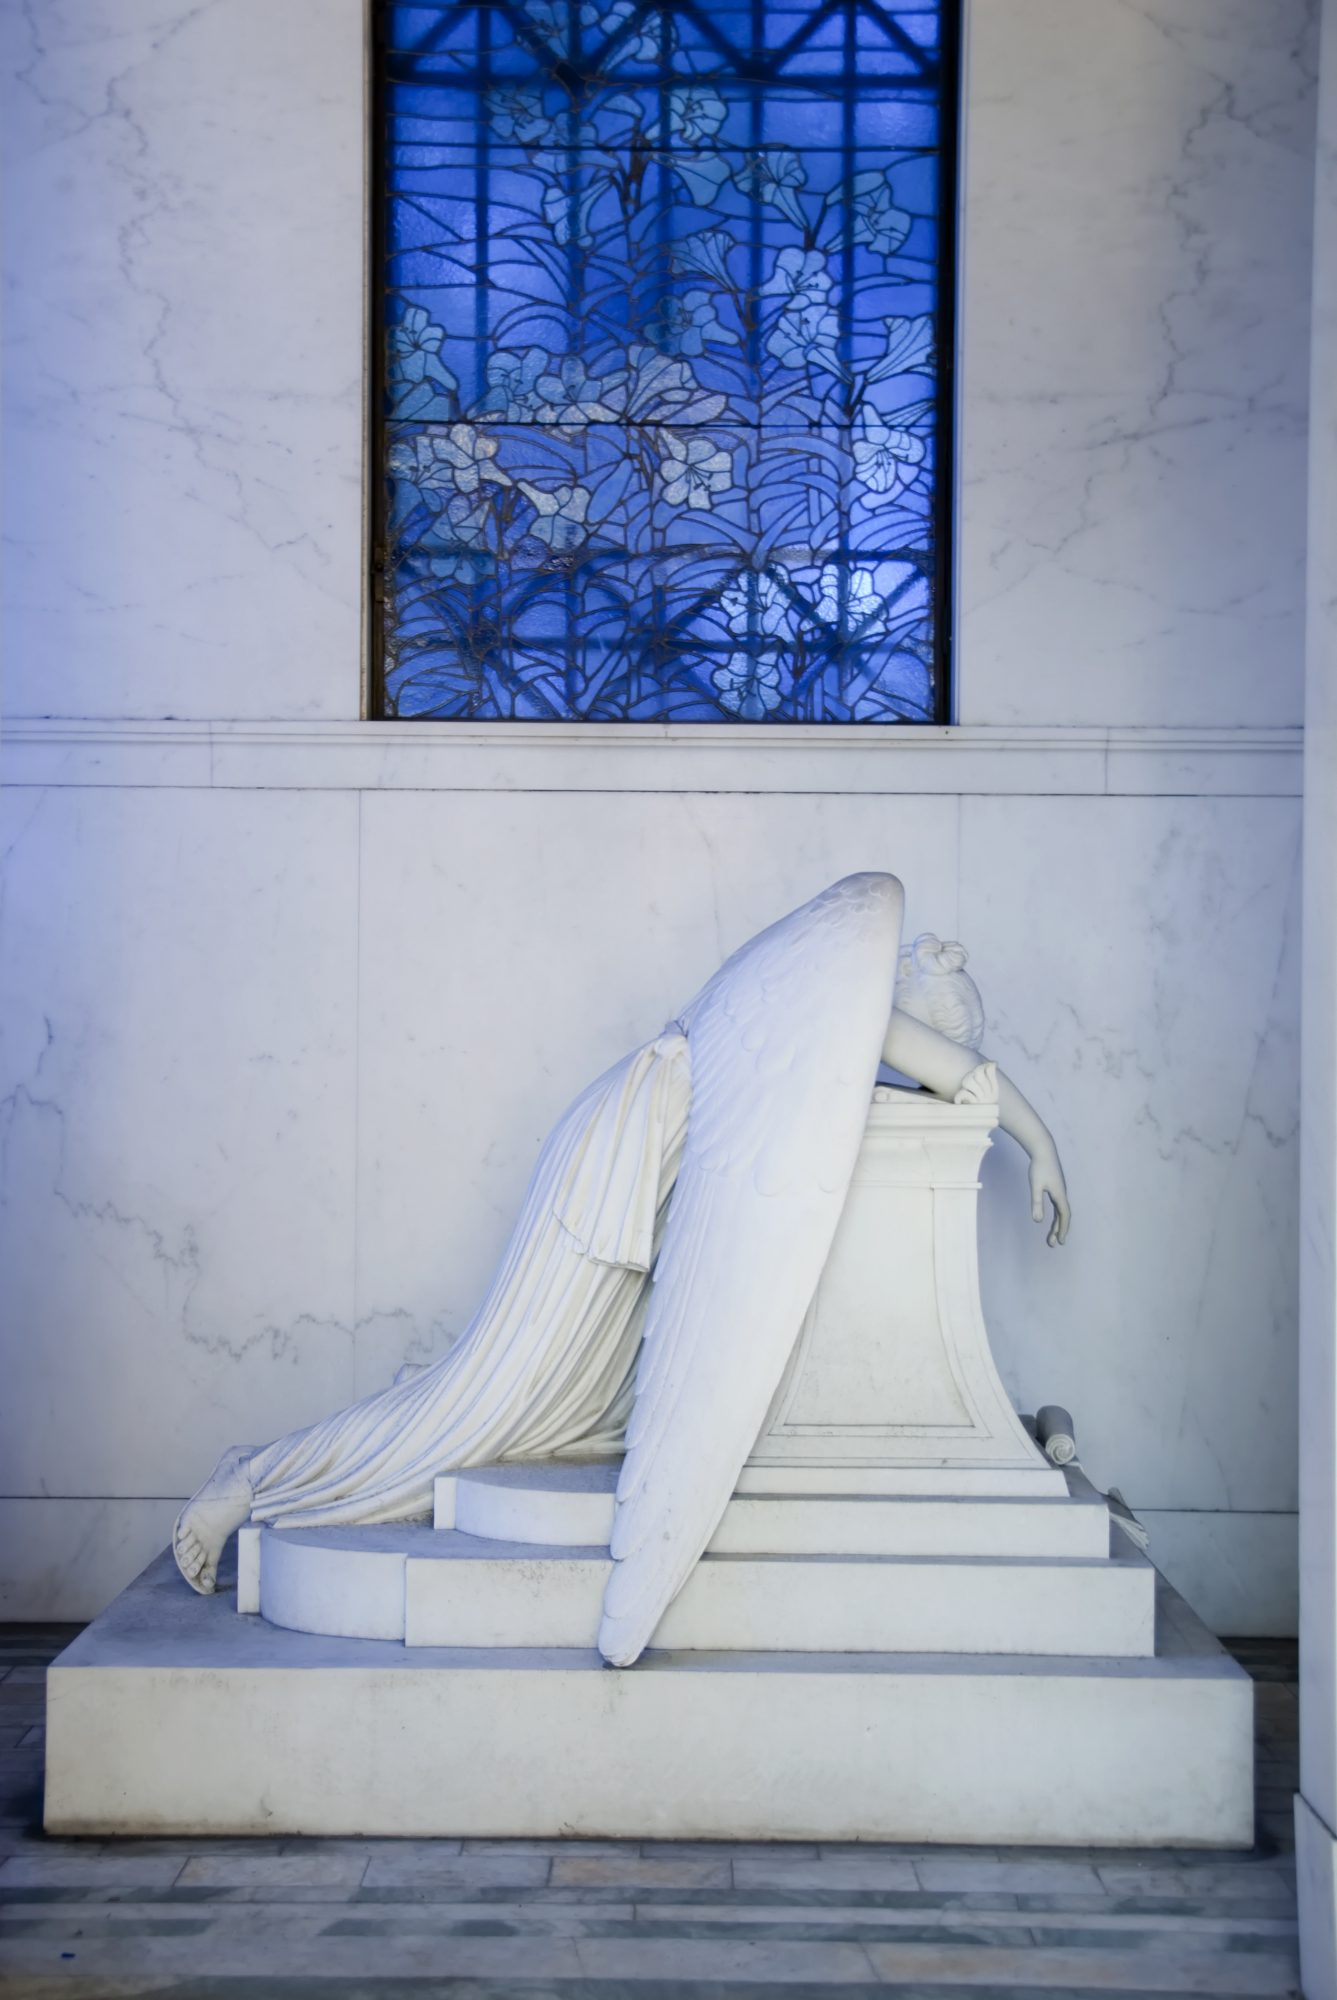 Weeping Angel Statue at Metairie Cemetery in New Orleans